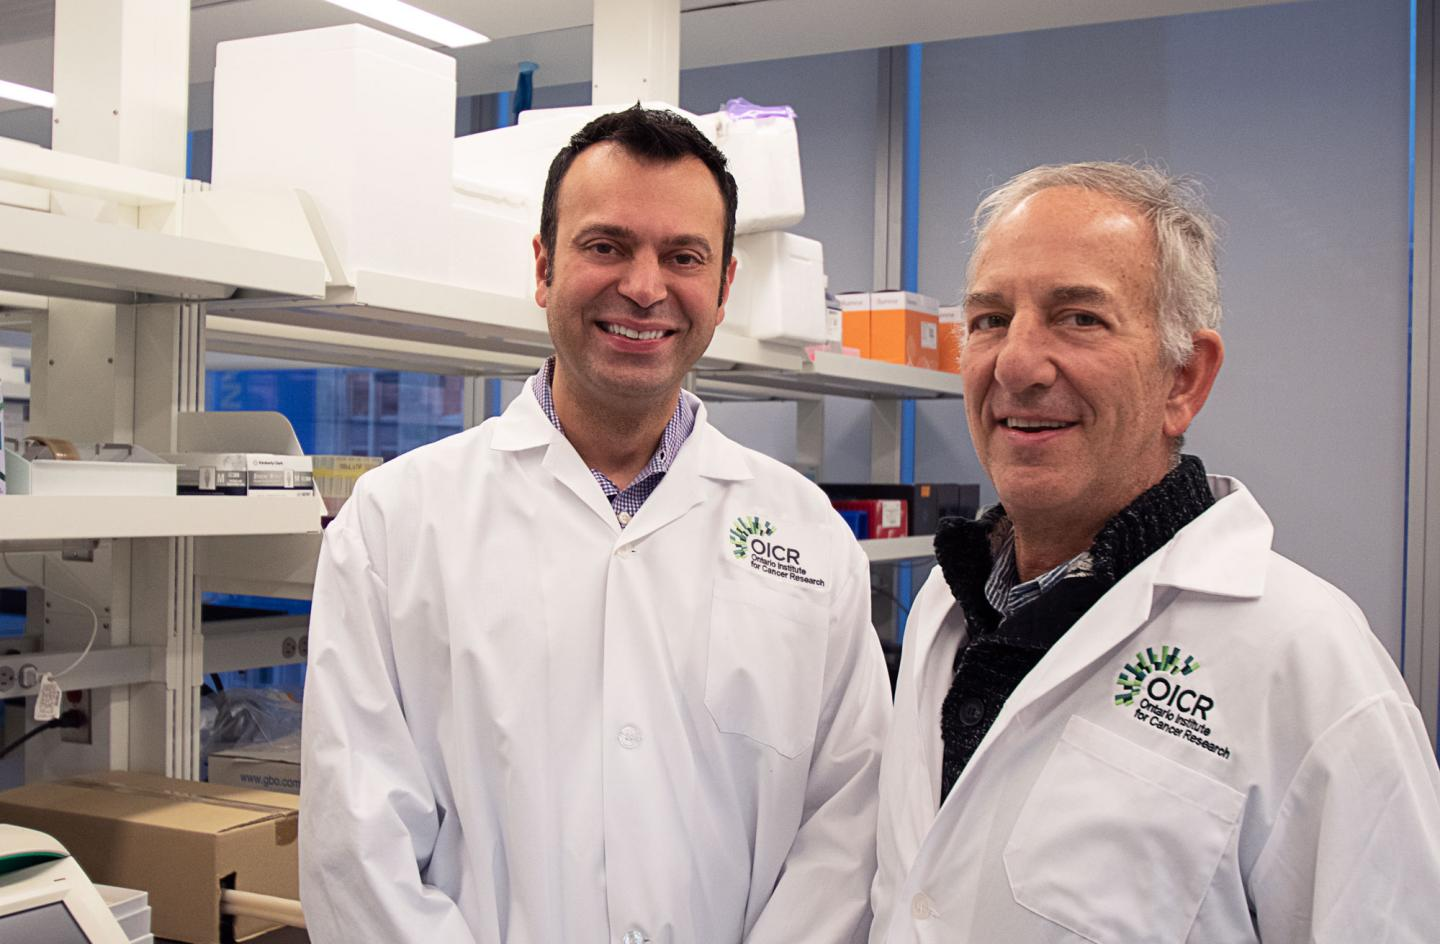 Drs. Faiyaz Notta and Steven Gallinger, Ontario Institute for Cancer Research